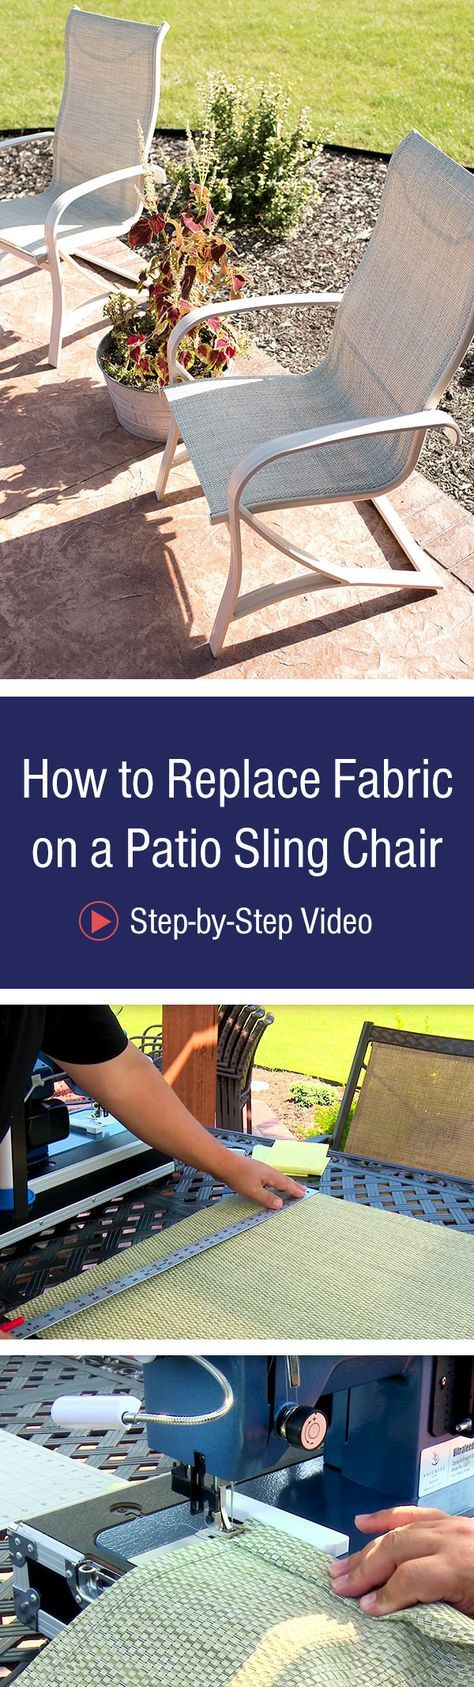 How to Replace Fabric on a Patio Sling Chair #furnitureredos